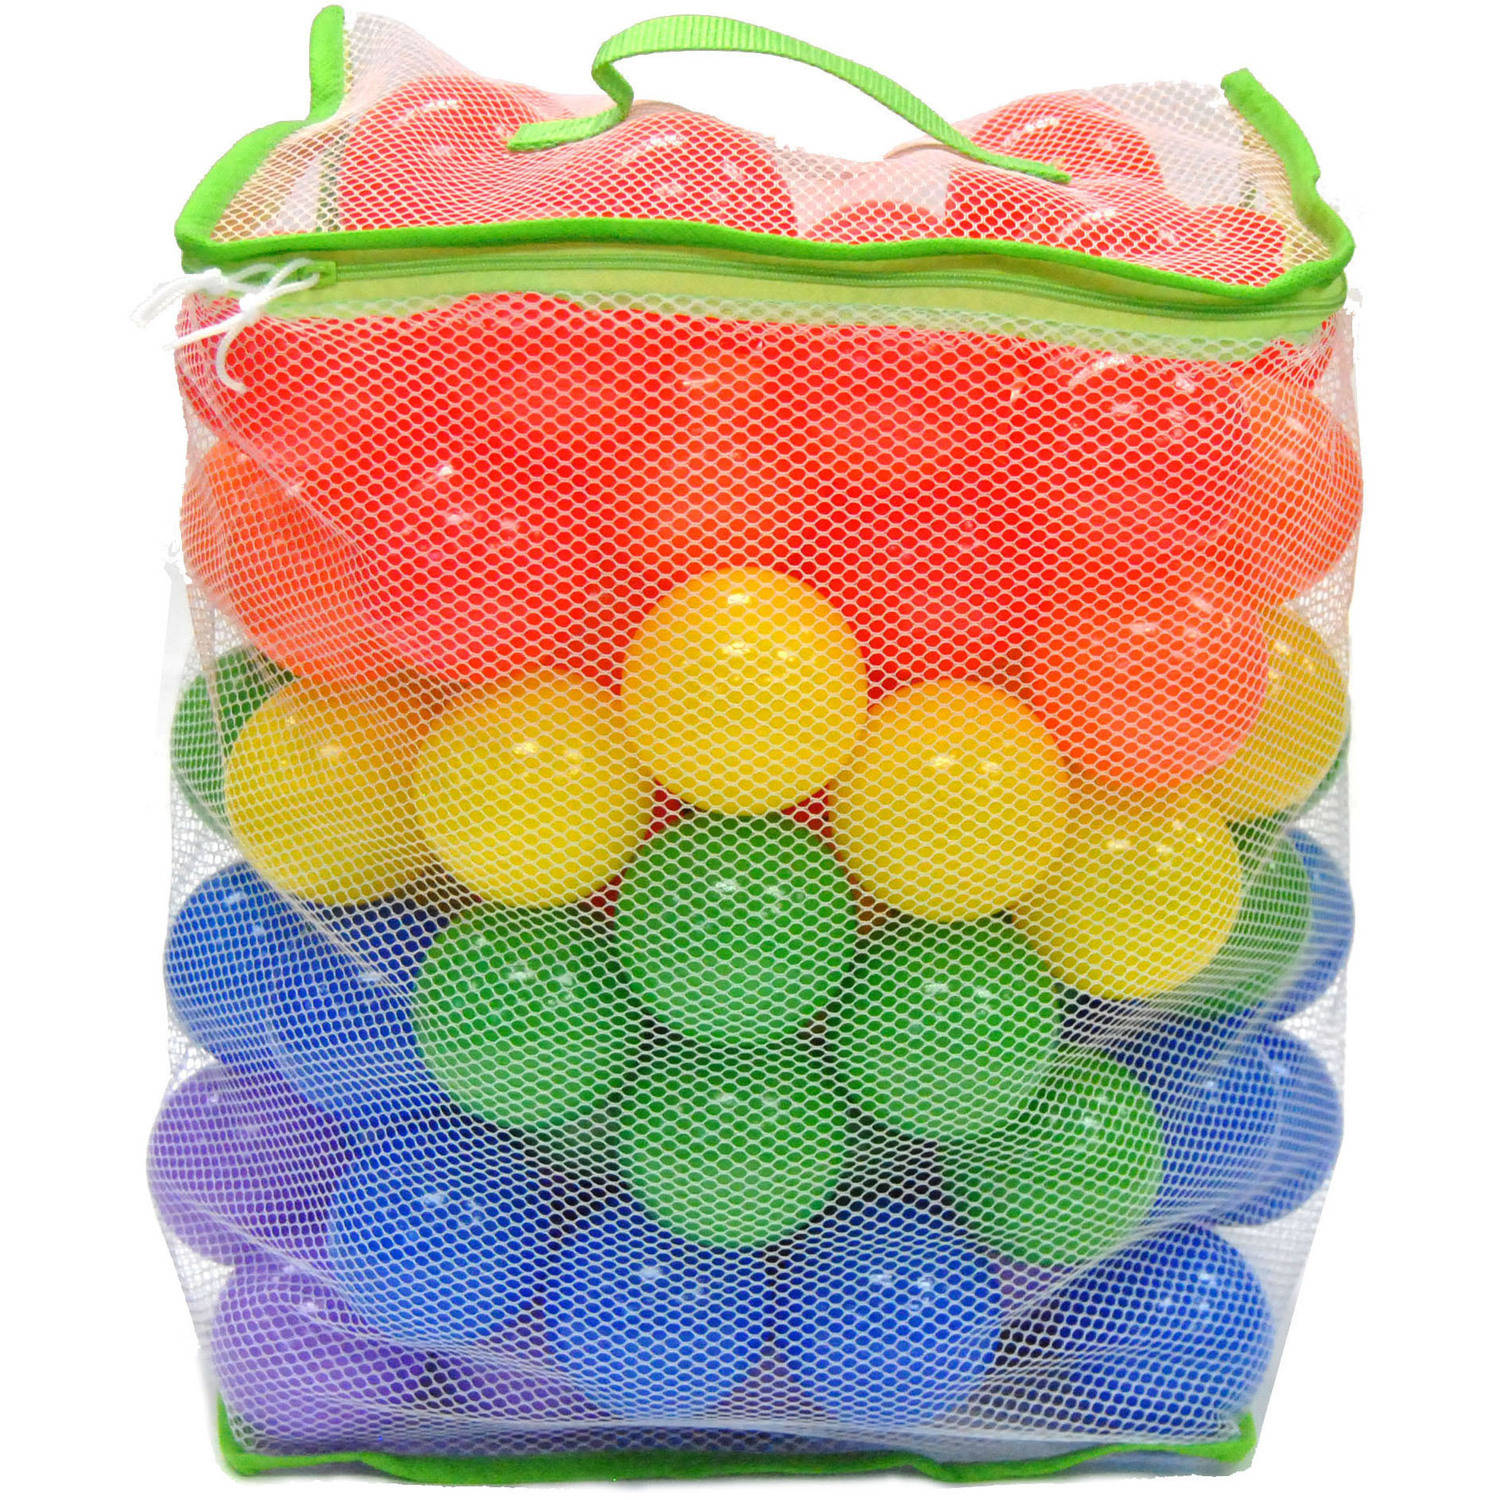 Non-Toxic 100 Wonder Playball 'Phthalate Free' Crush Proof with Mesh Tote 6.5cm Pit Balls